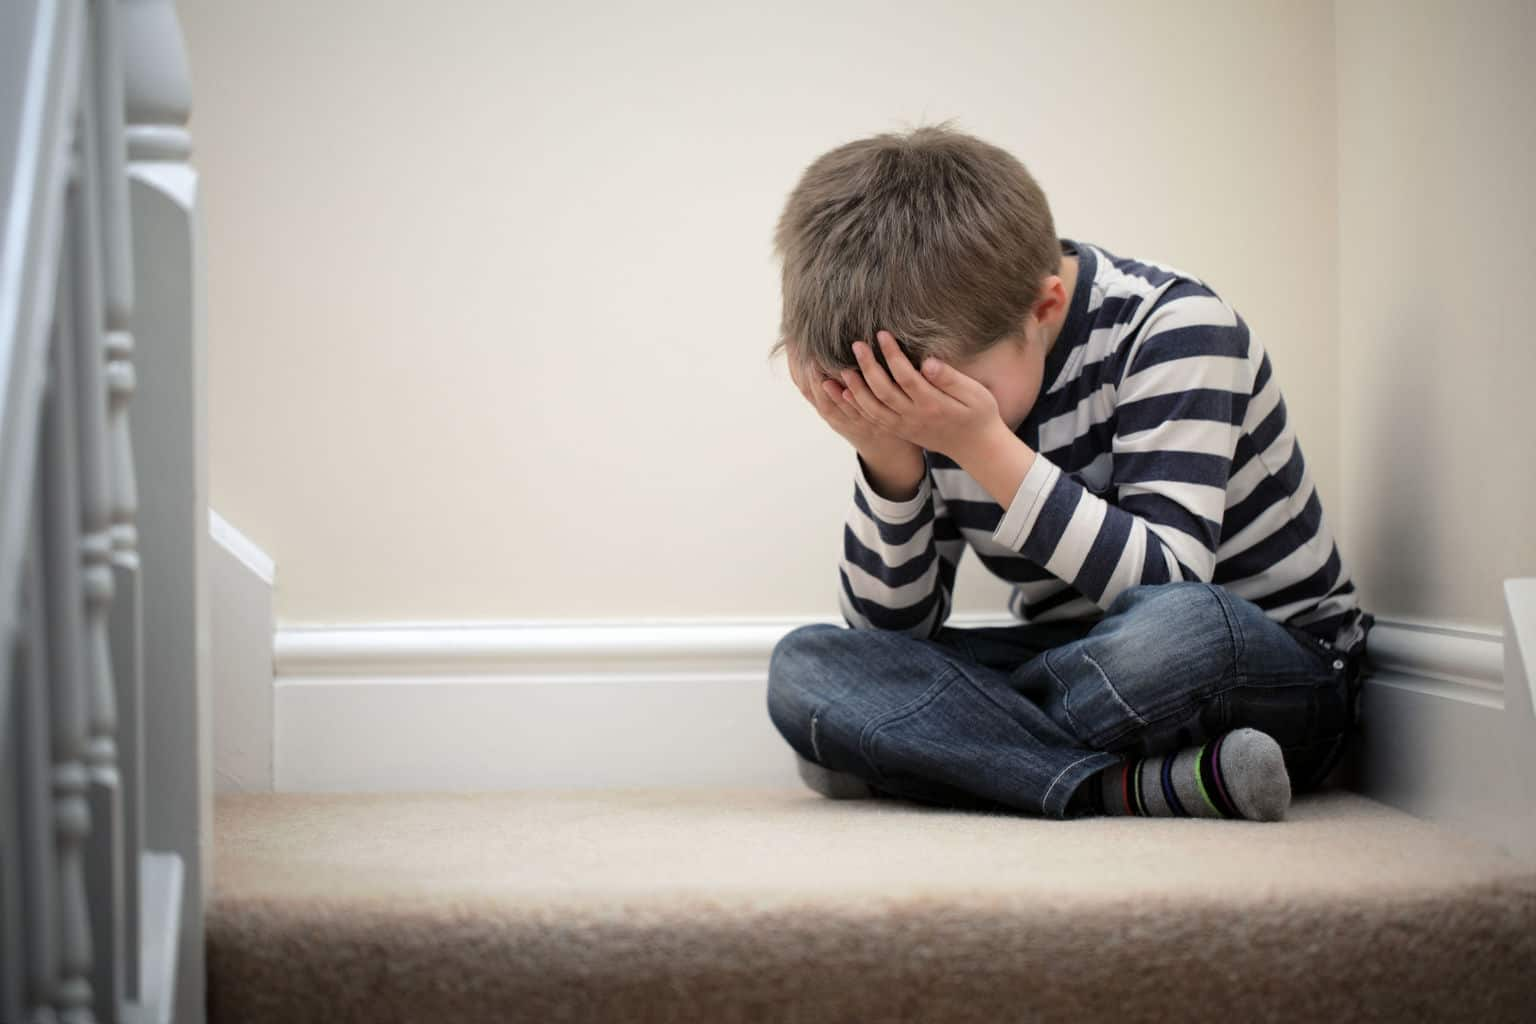 Can children have PTSD?